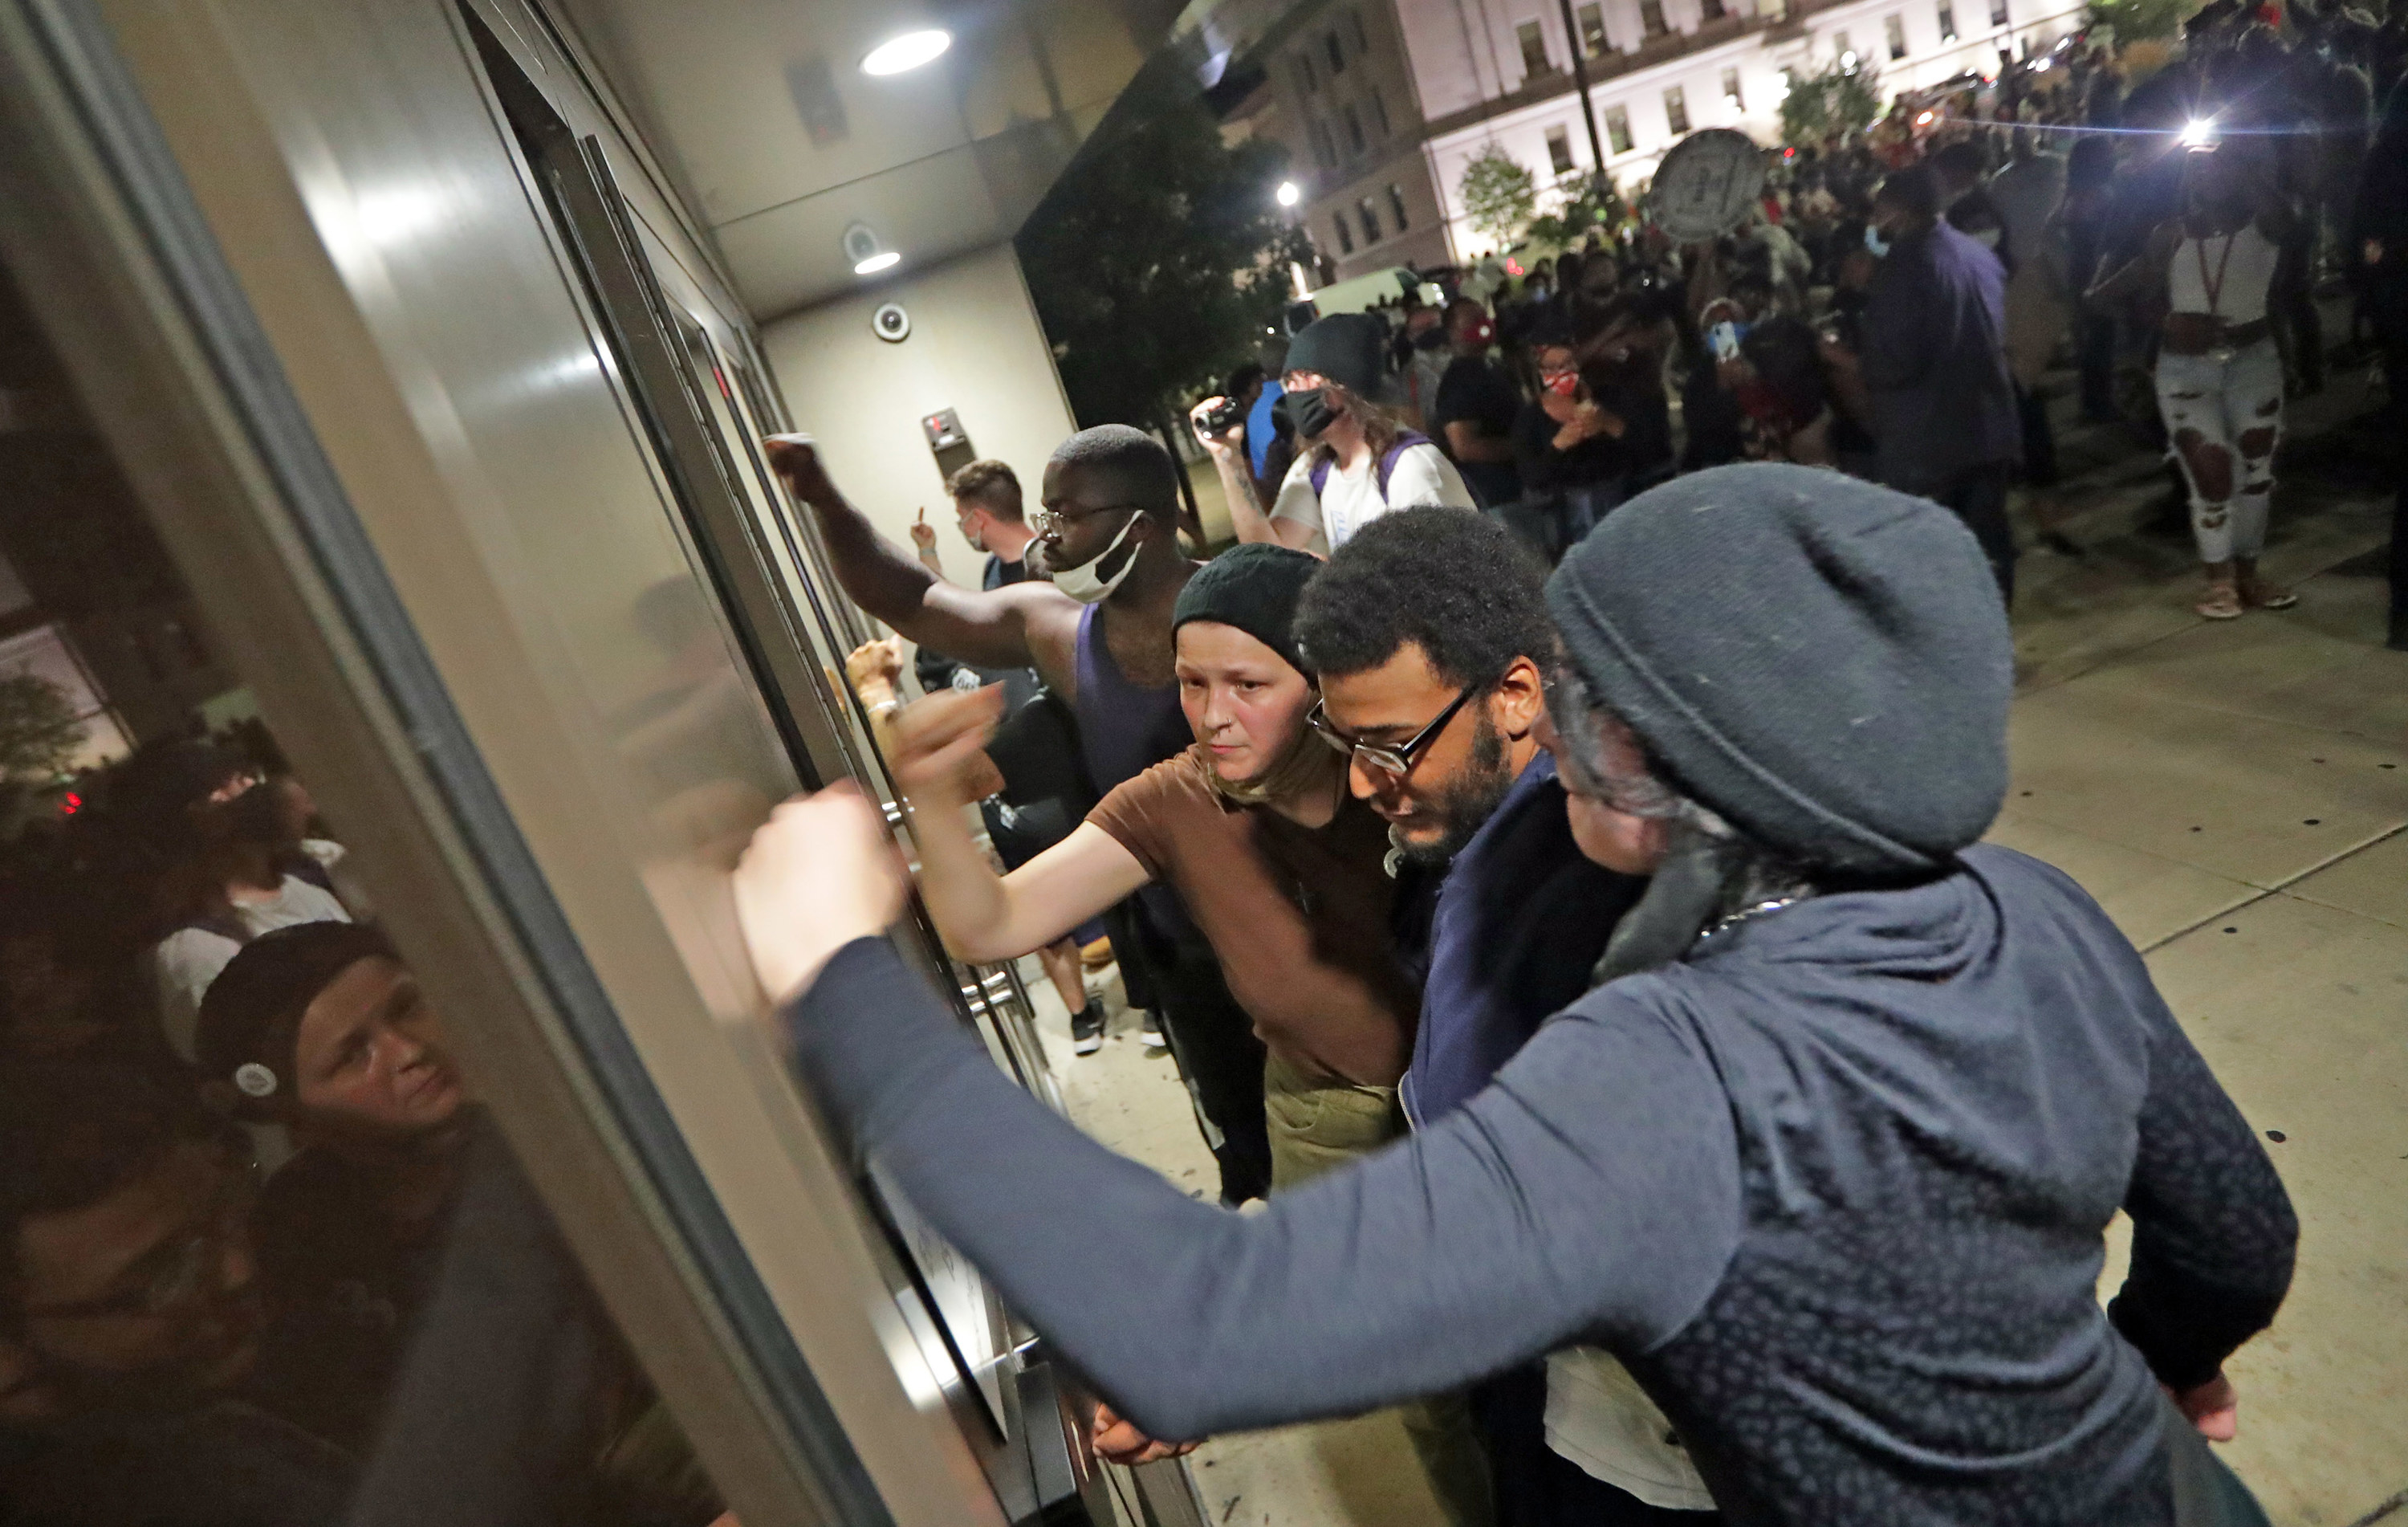 Three people pound on a door with a larger crowd behind them